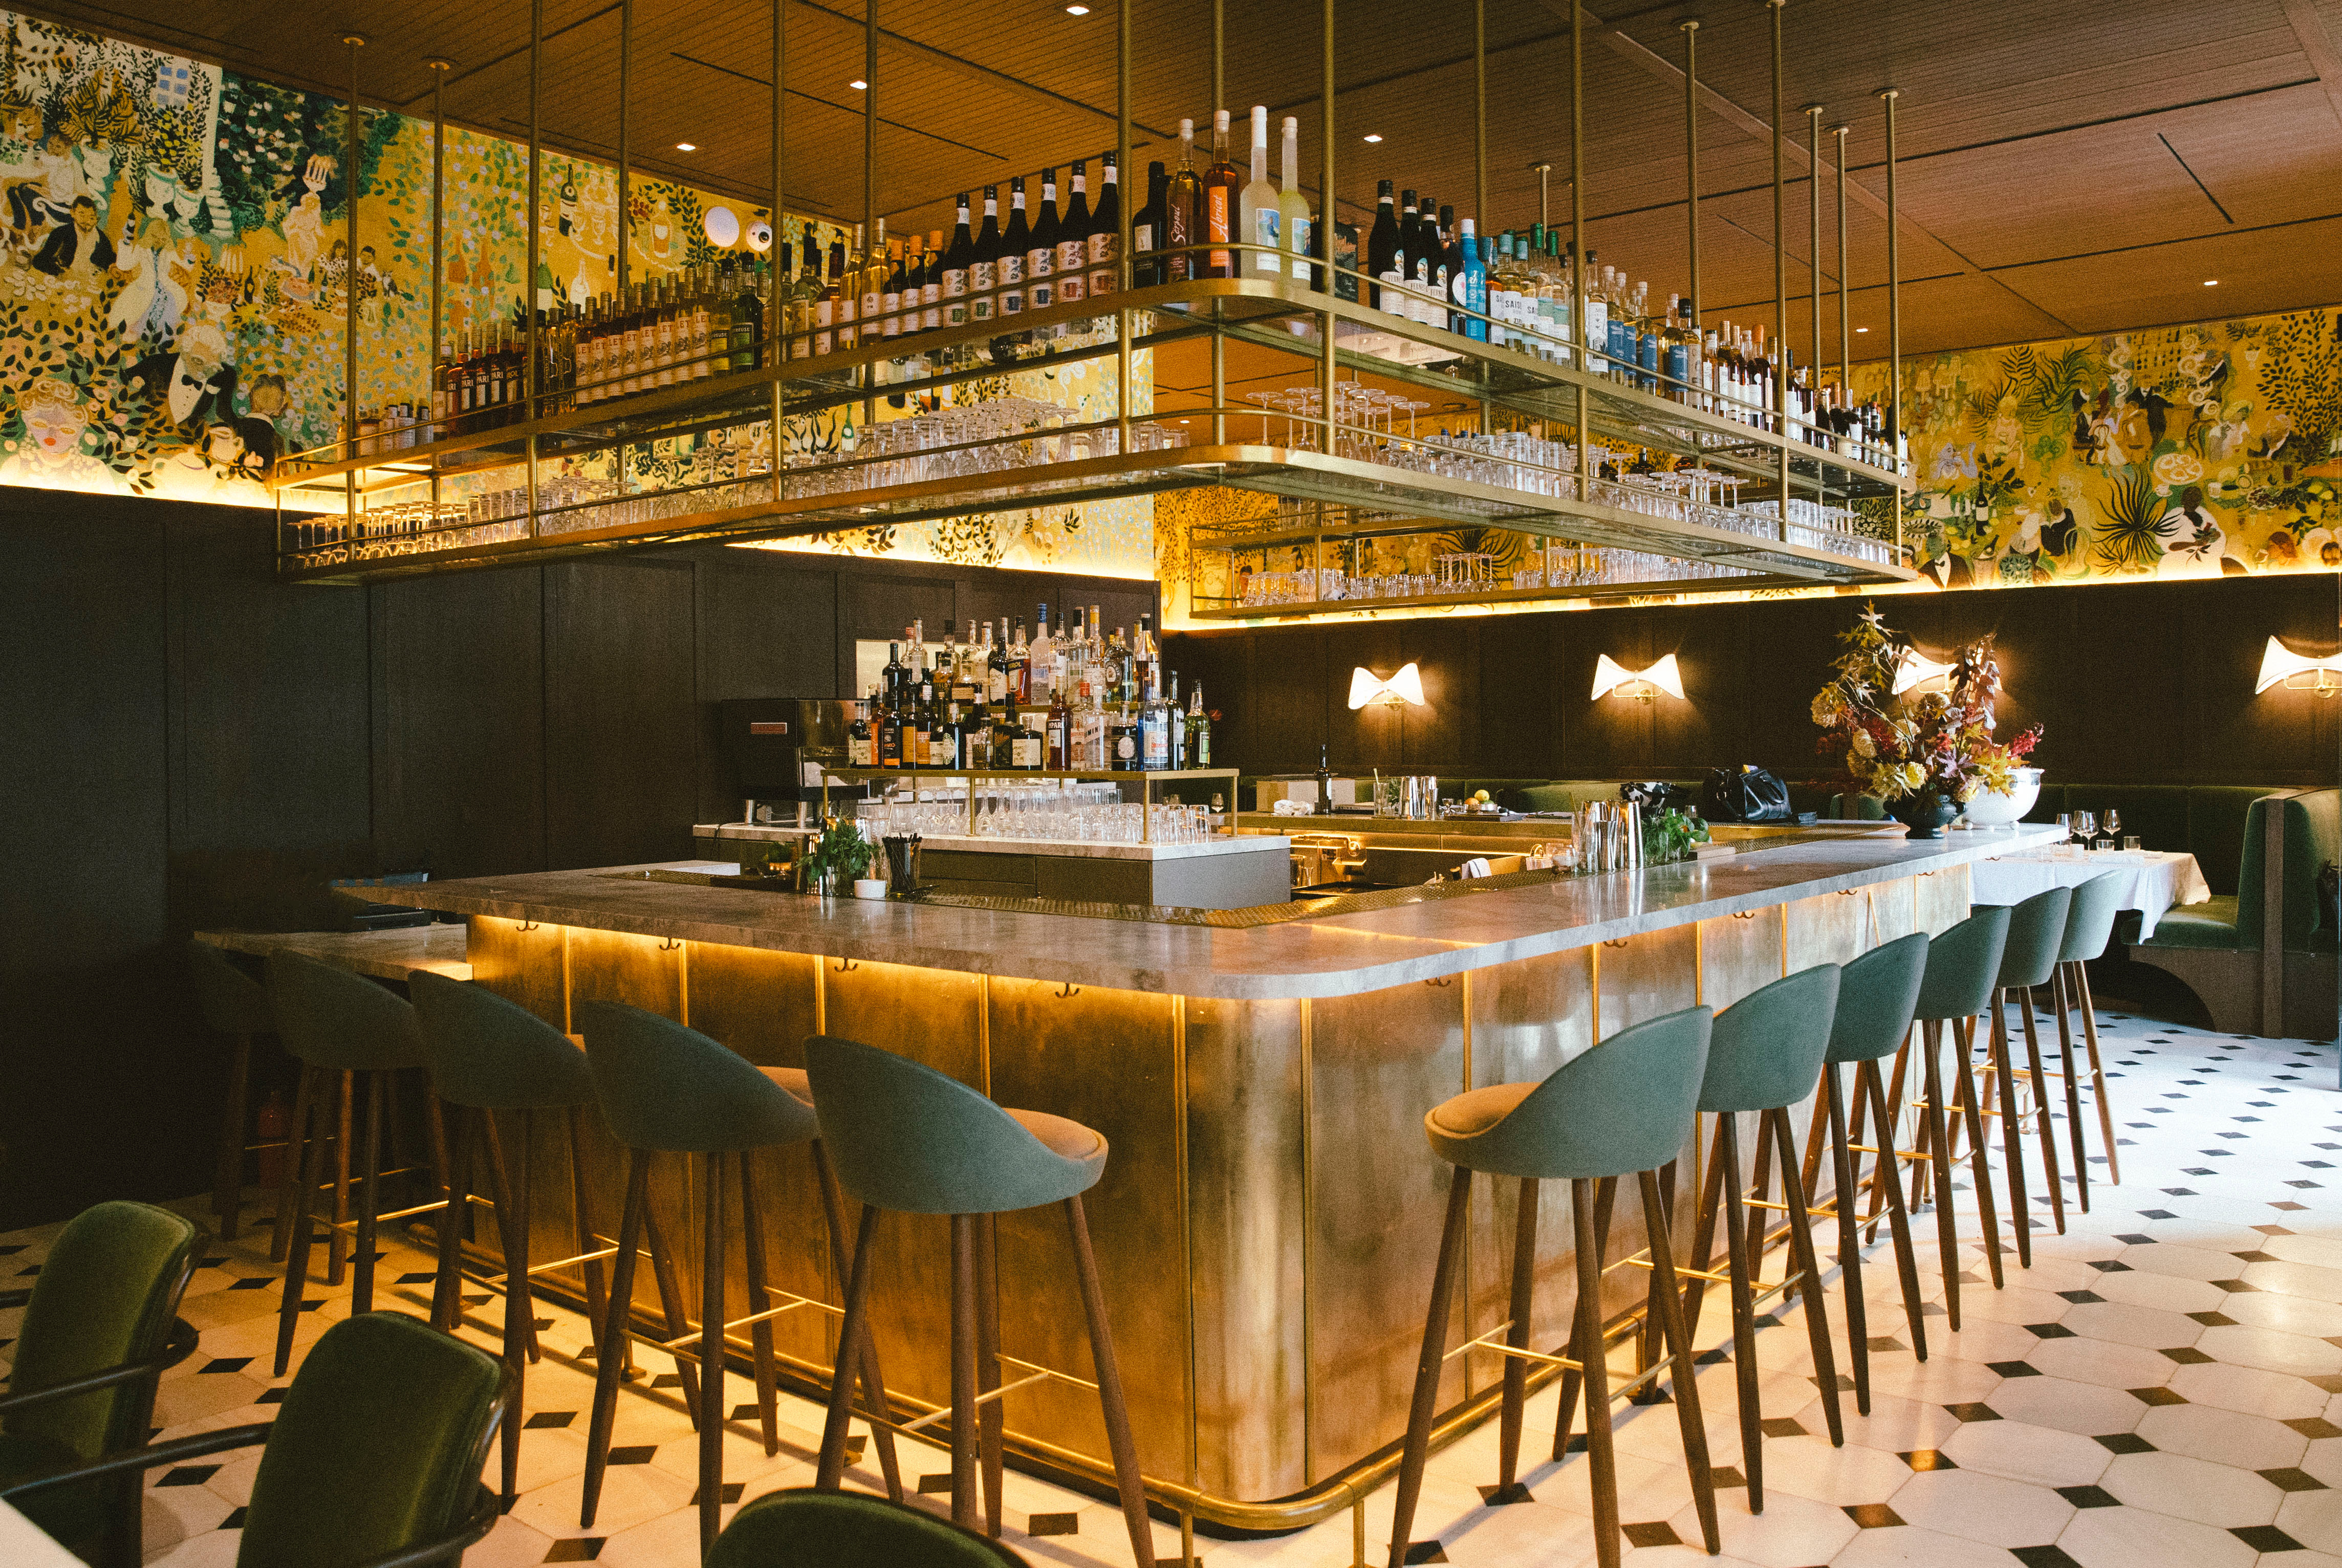 The Best La Restaurants For A Birthday Dinner Los Angeles The Infatuation